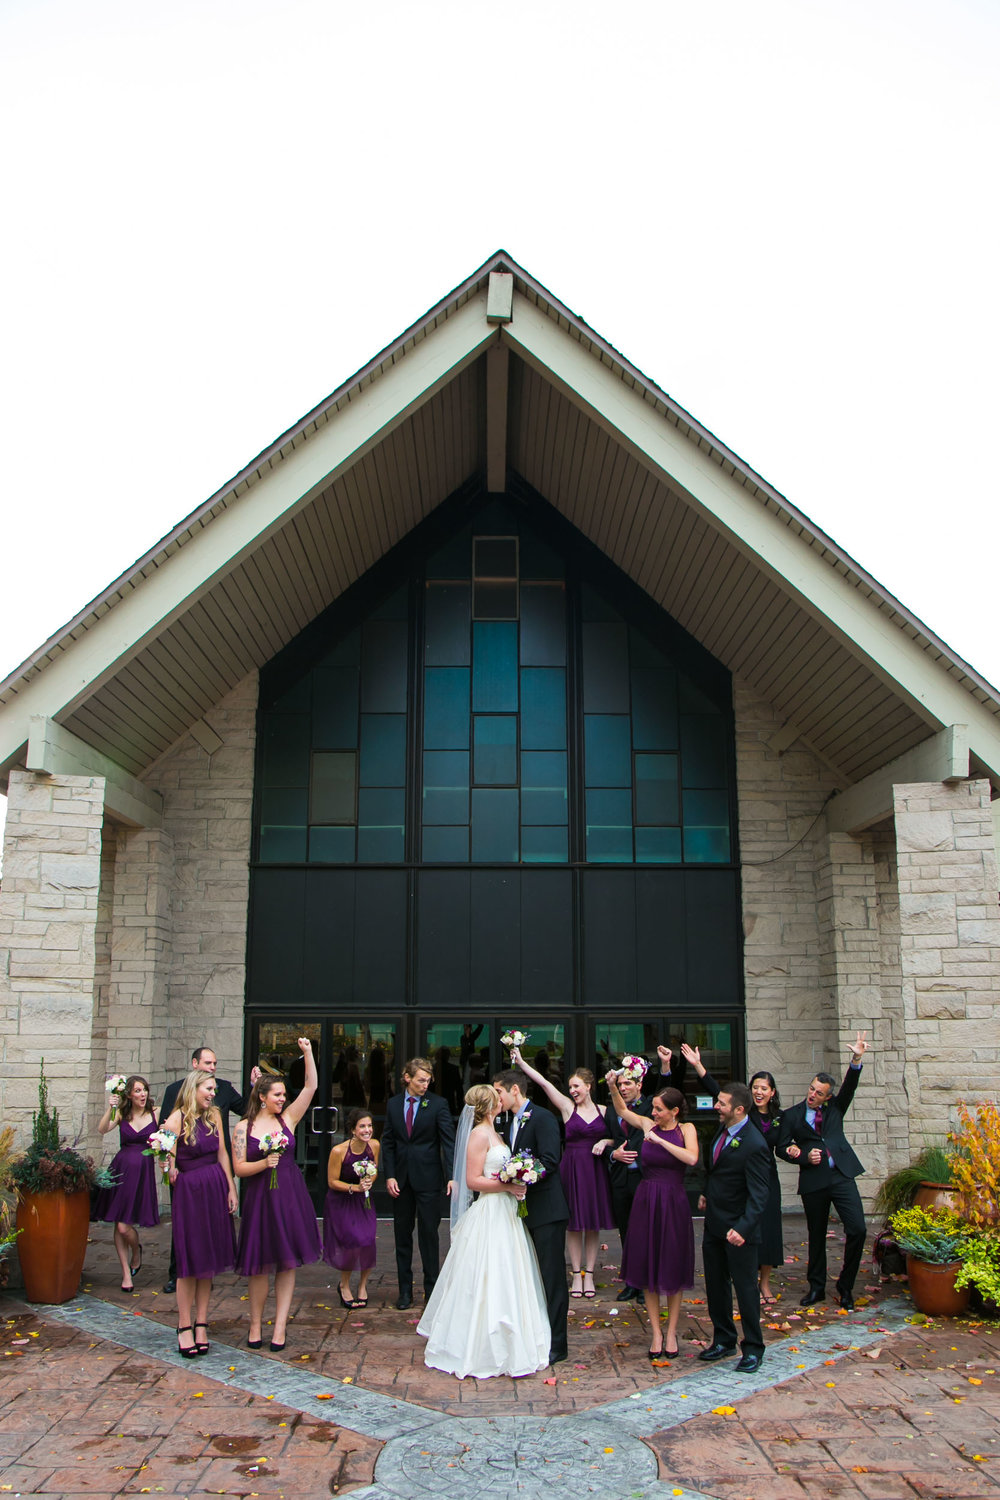 Seattle Community Church Wedding Photography | By G. Lin Photography | Fun wedding party photo